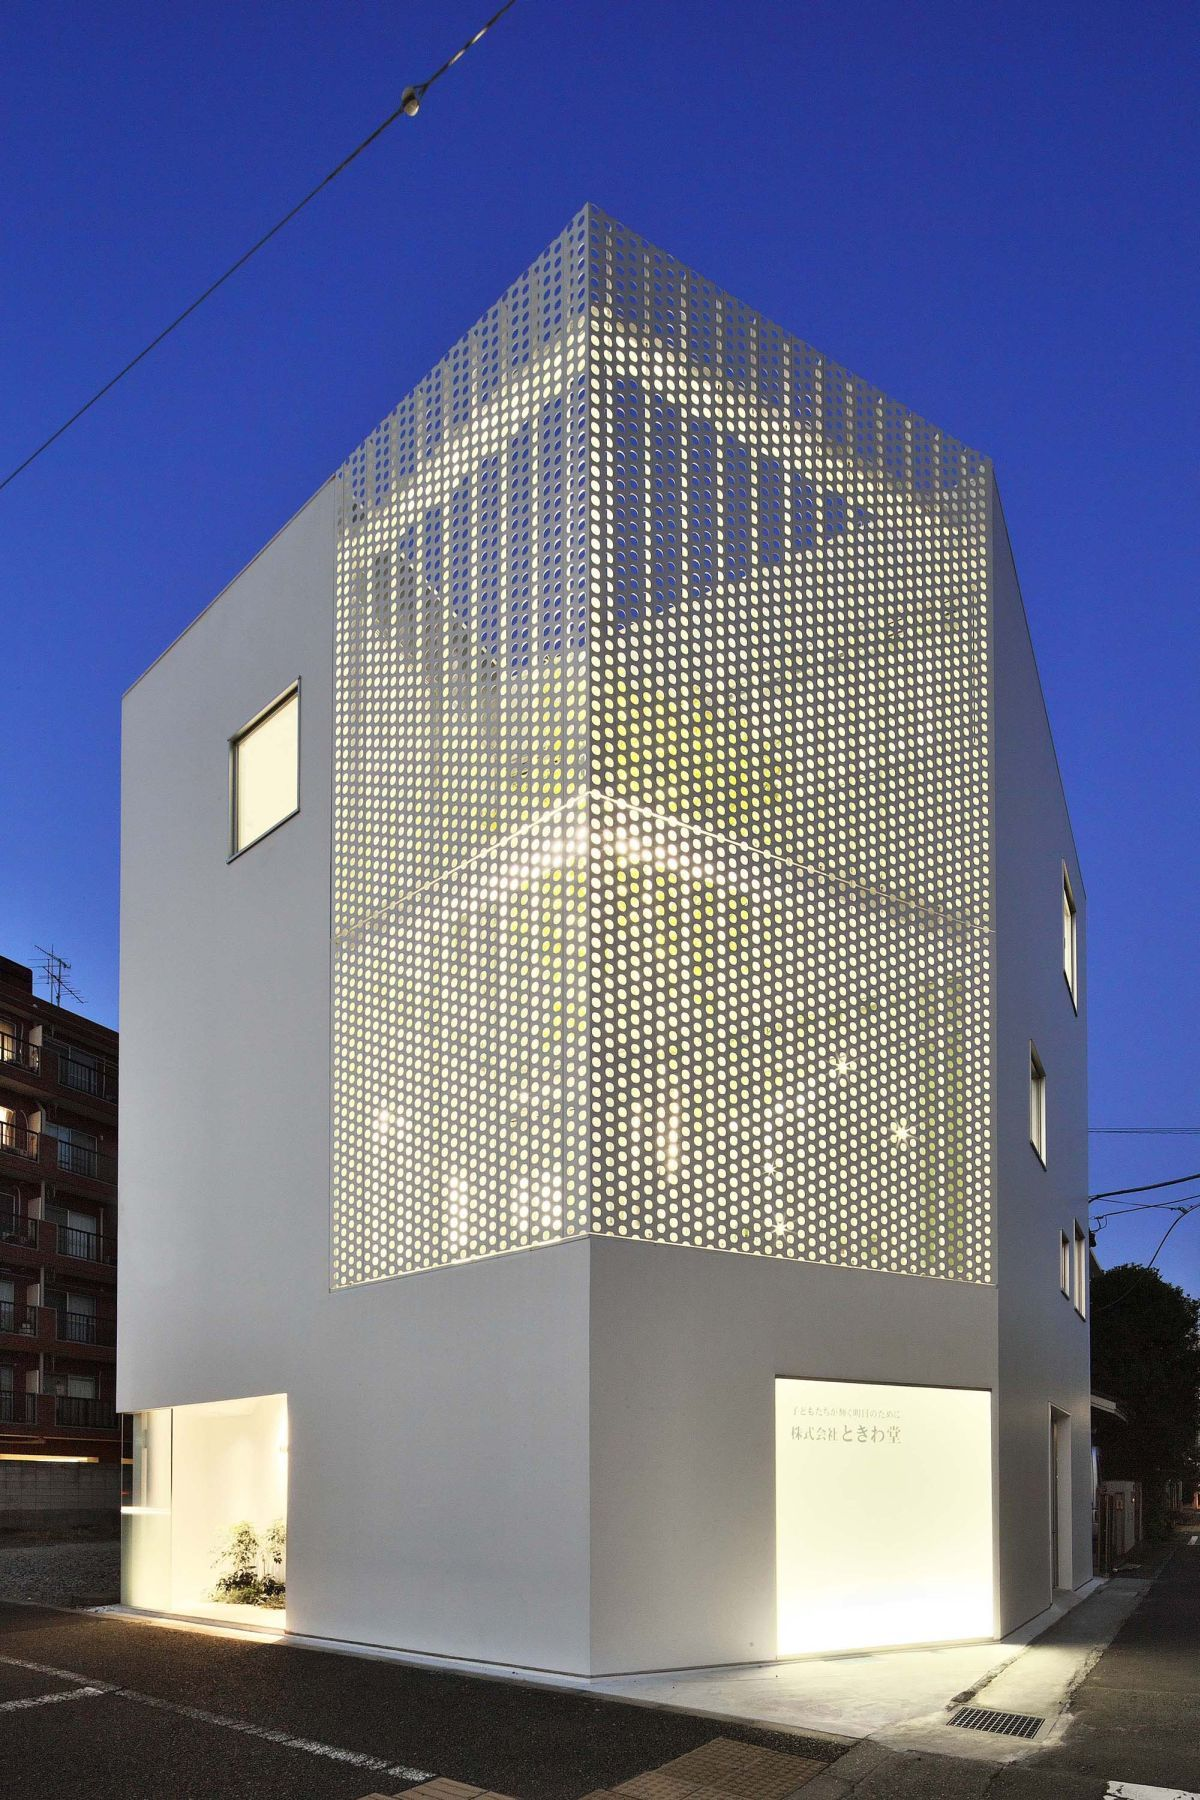 Architecture Modern Architecture Facade House: Perforated Building Facades That Redefine Traditional Design